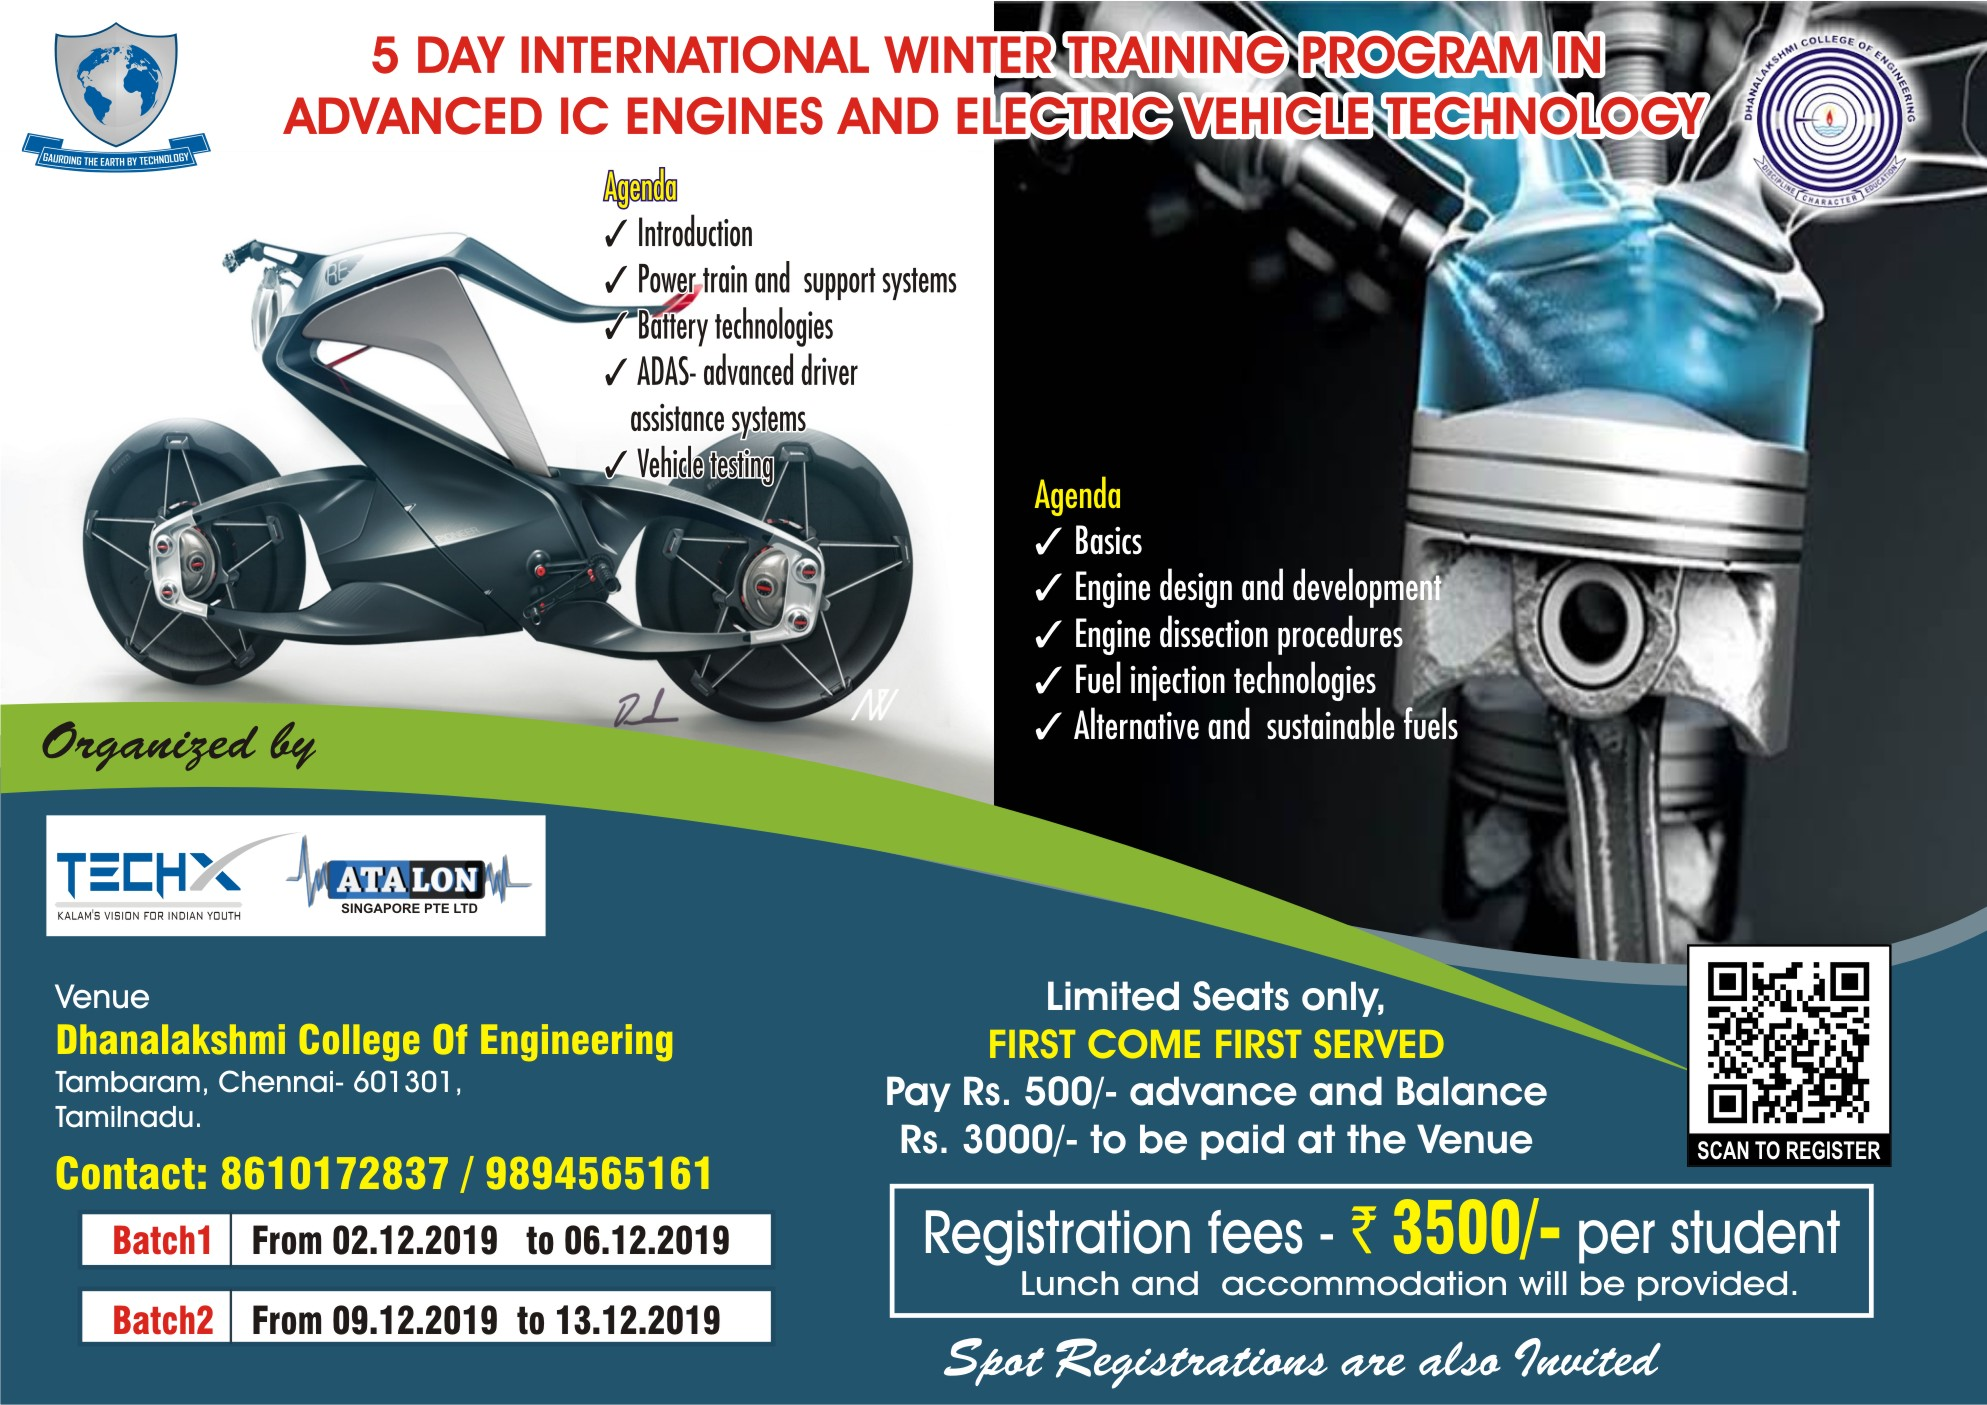 5 Day Internaional Winter Training Program in Advanced IC Engines and Elecric Vehicle Technology 2019